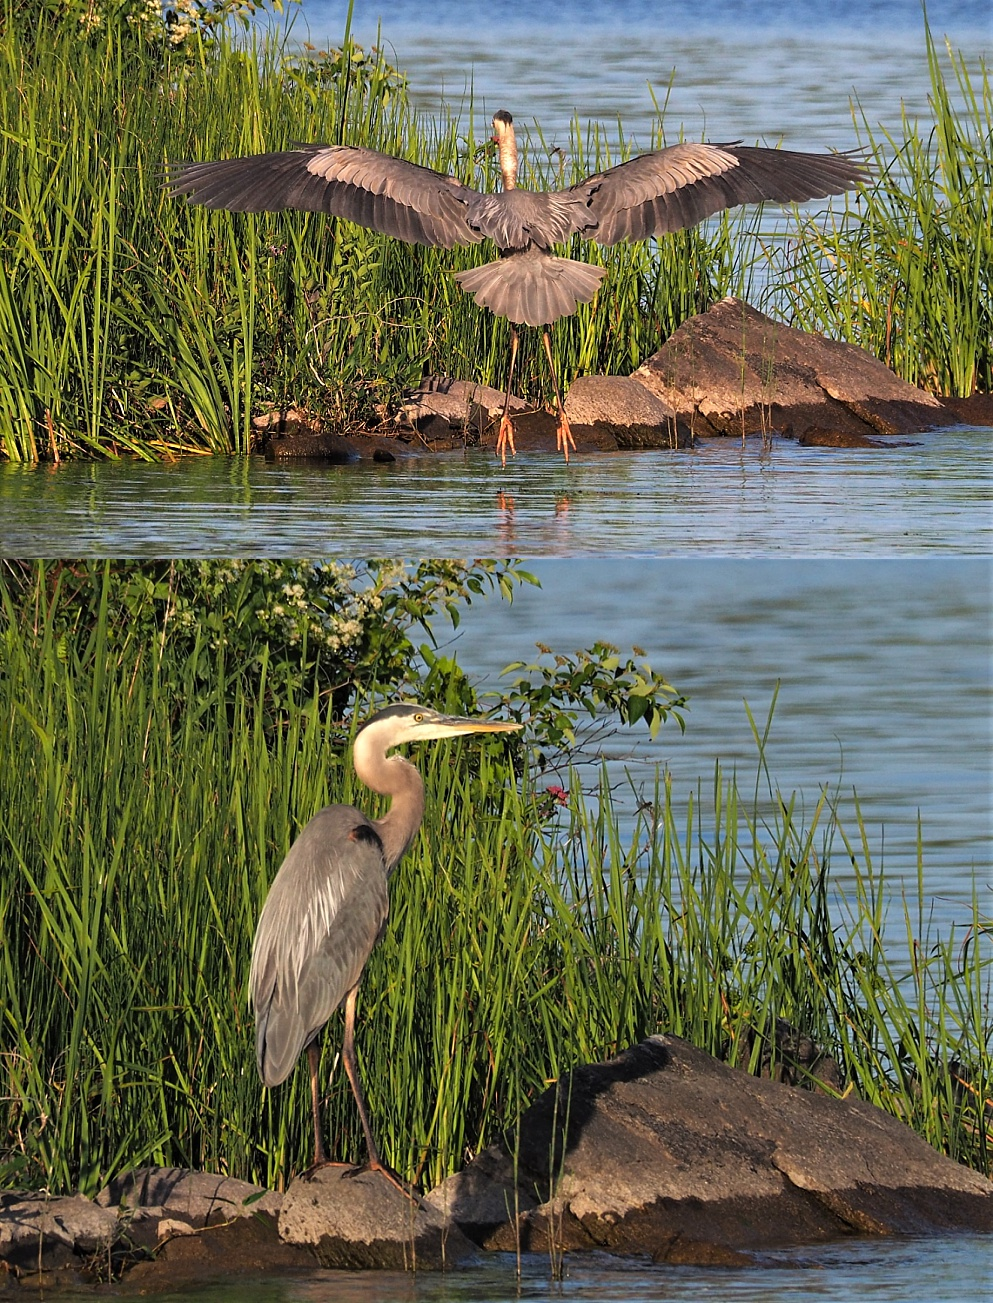 2-photo collage of great blue heron in late-afternoon light